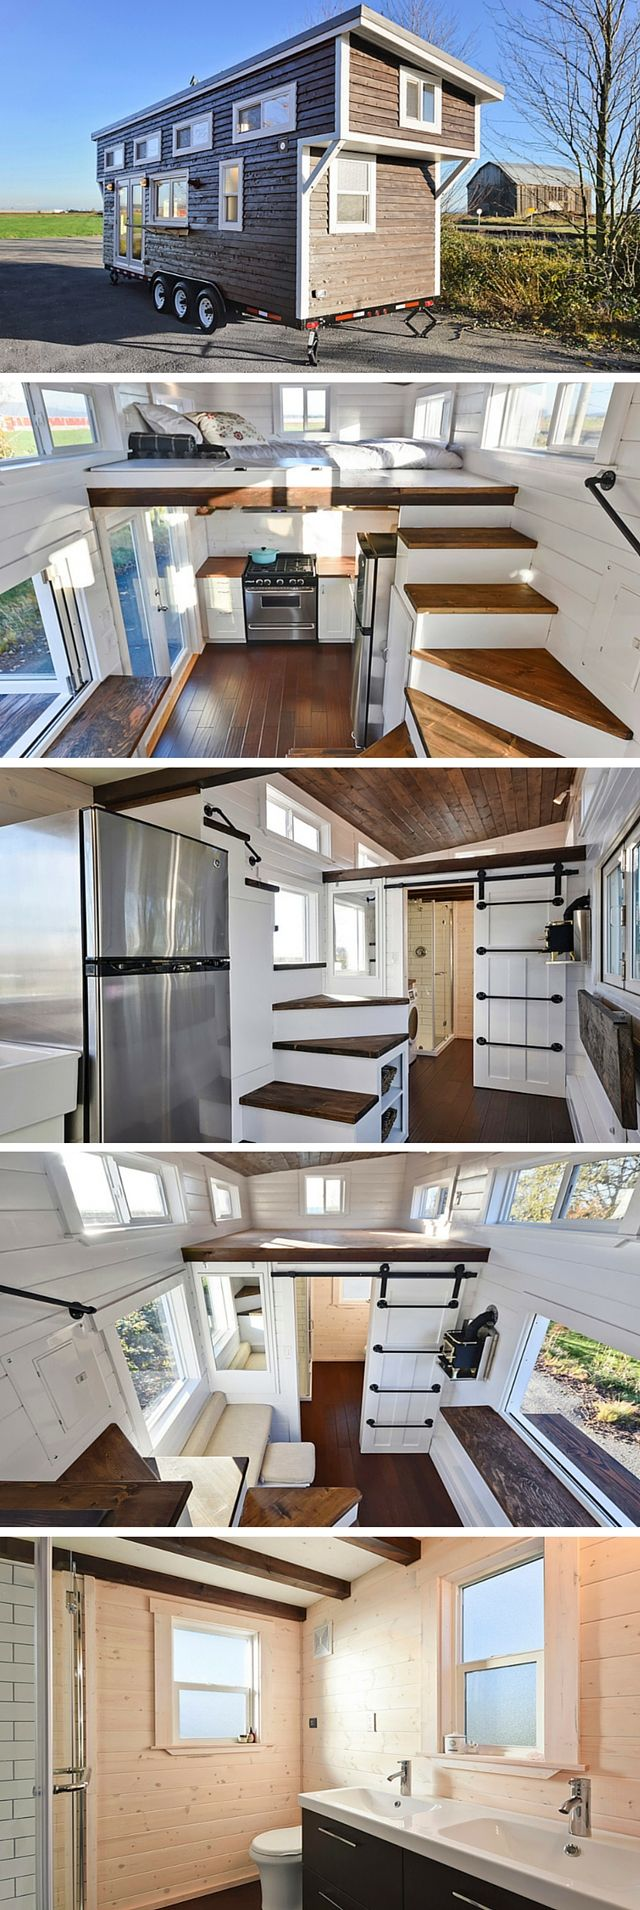 Amazing Best 25+ Tiny House Design Ideas On Pinterest | Tiny Living, Tiny House  Living And Modern Tiny Homes